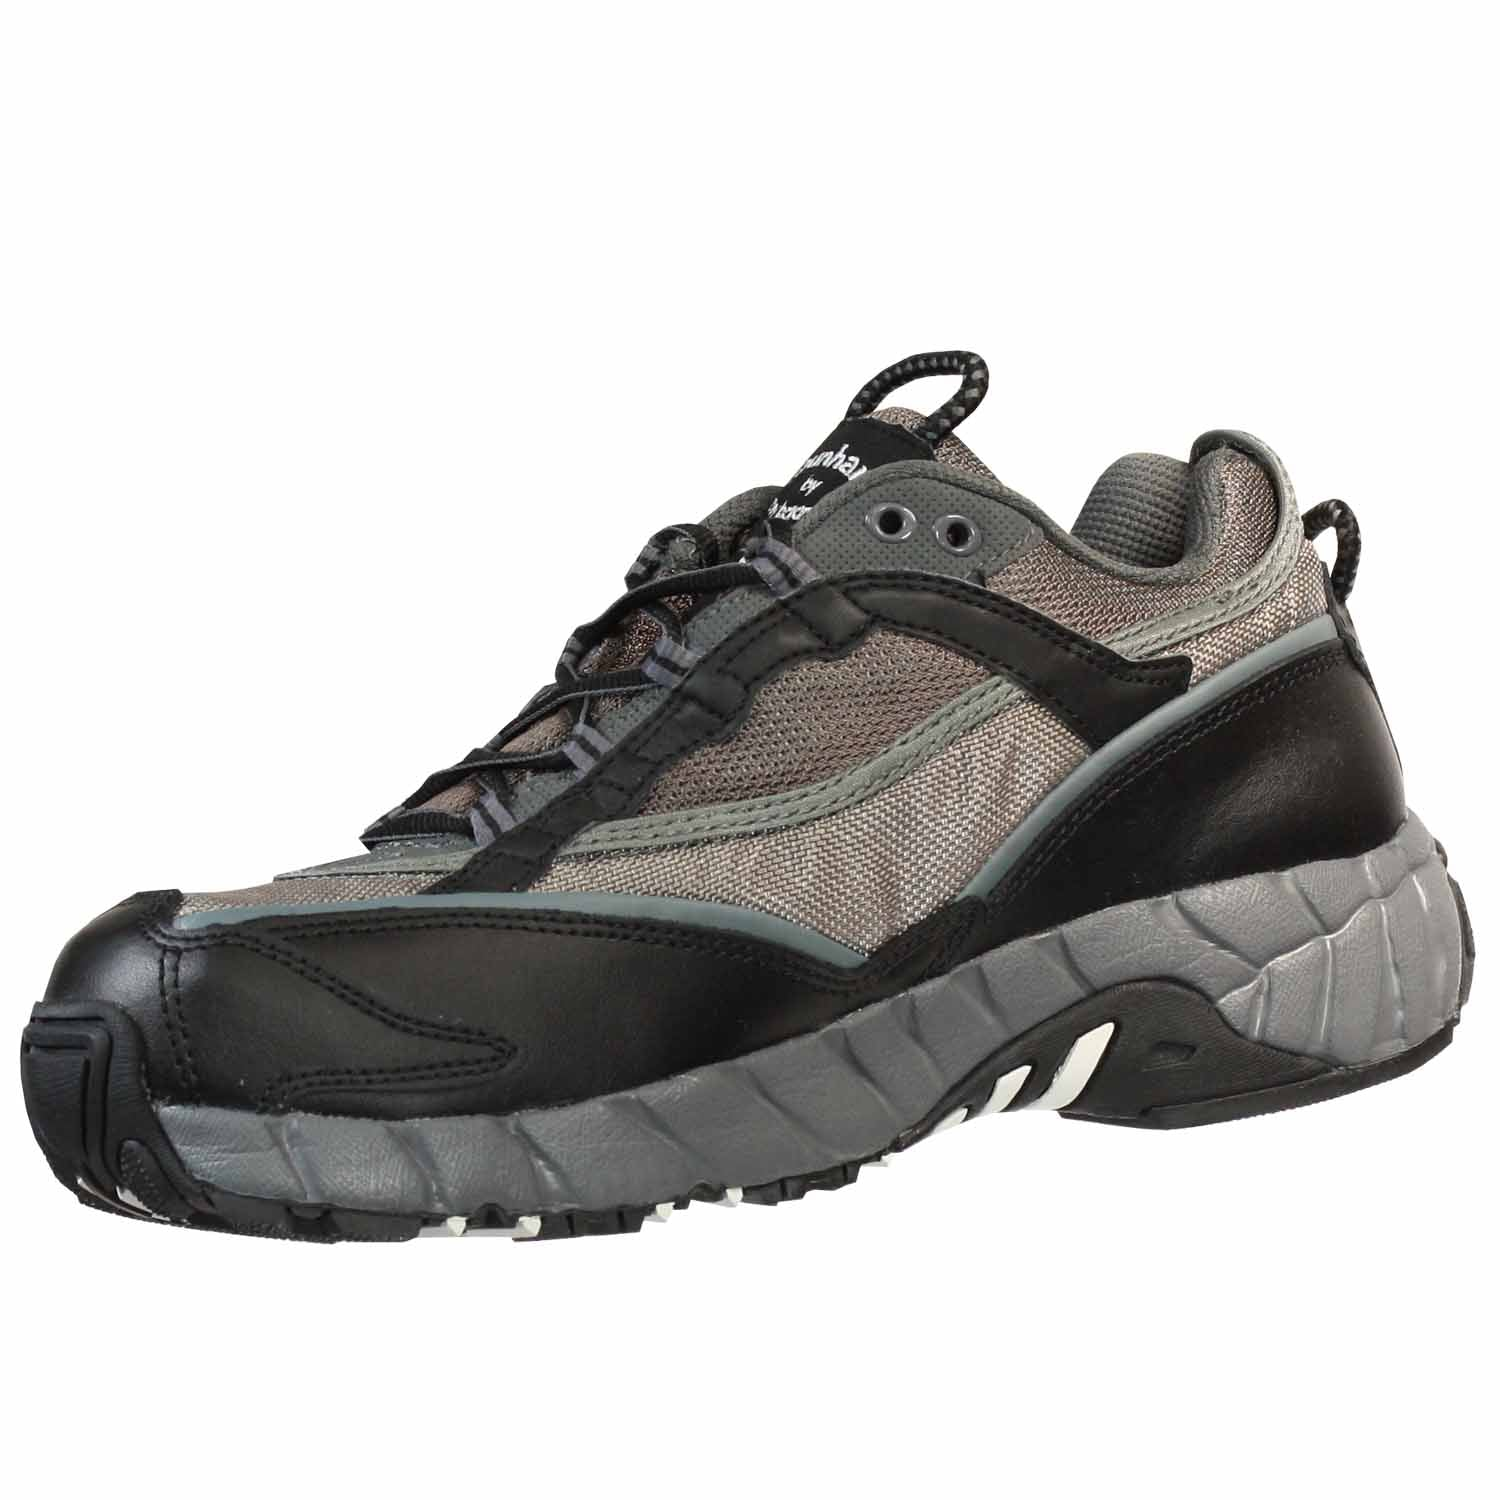 dunham new balance men's steel toe work shoes